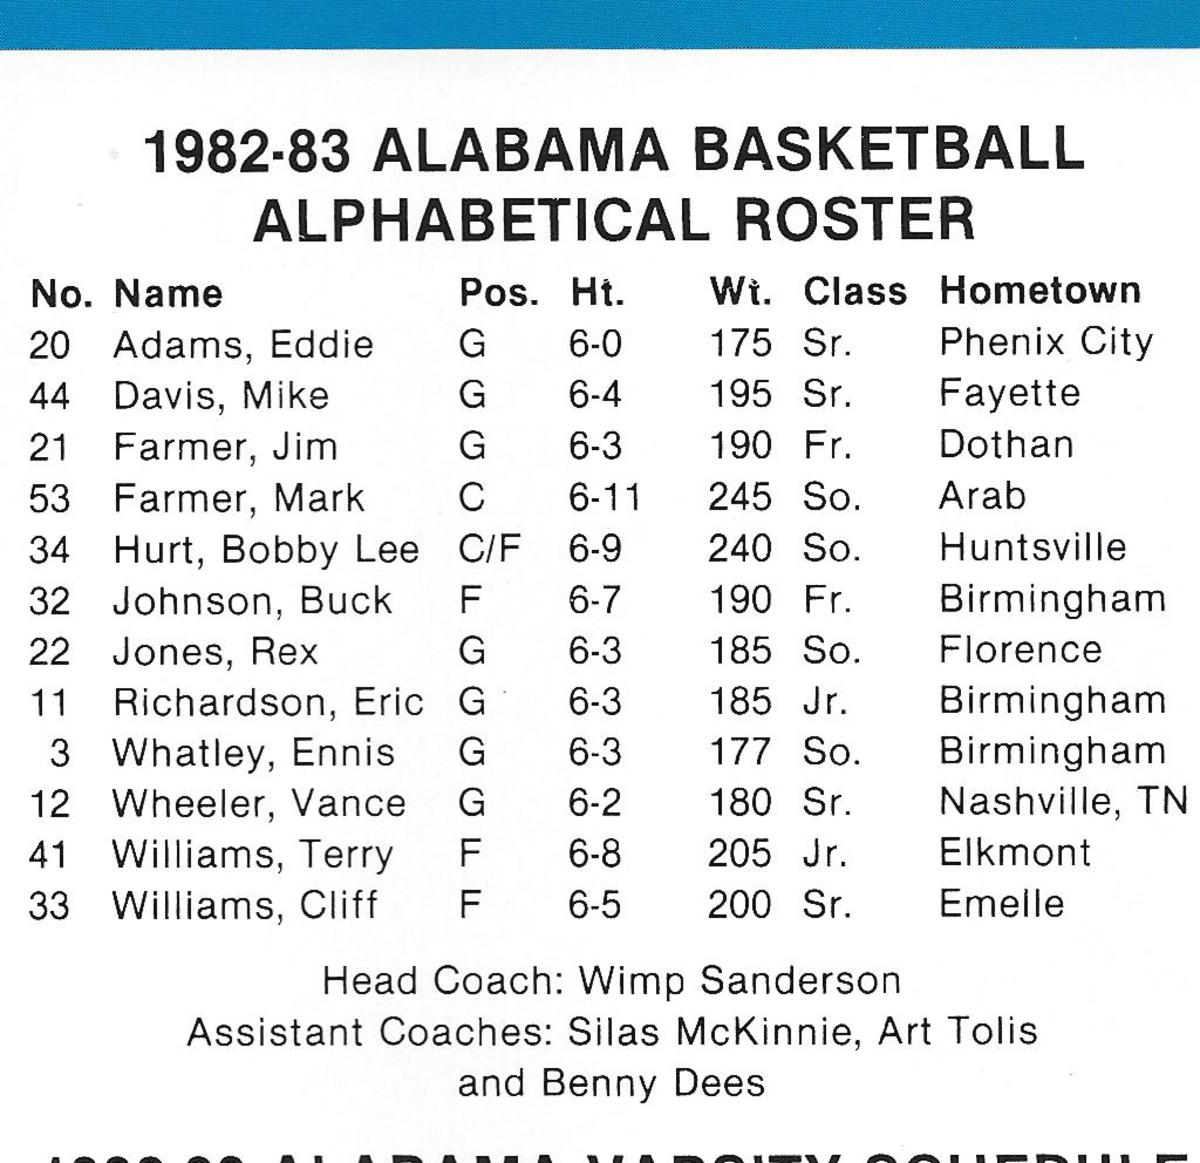 Alabama's roster at the UCLA game.